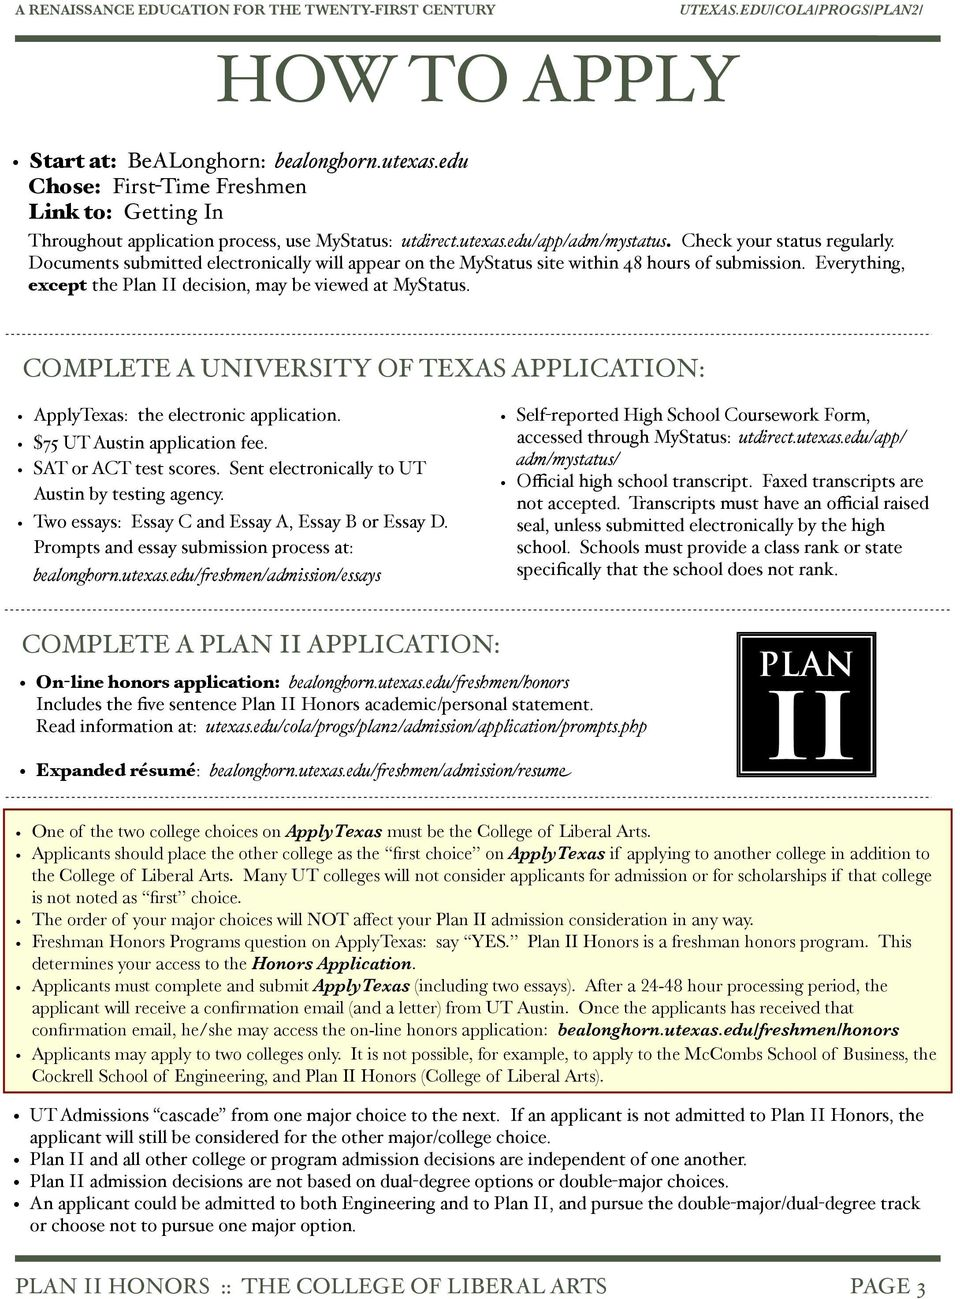 the plan ii honors program at the university of texas at austin pdf complete a university of texas application applytexas the electronic application 75 ut austin